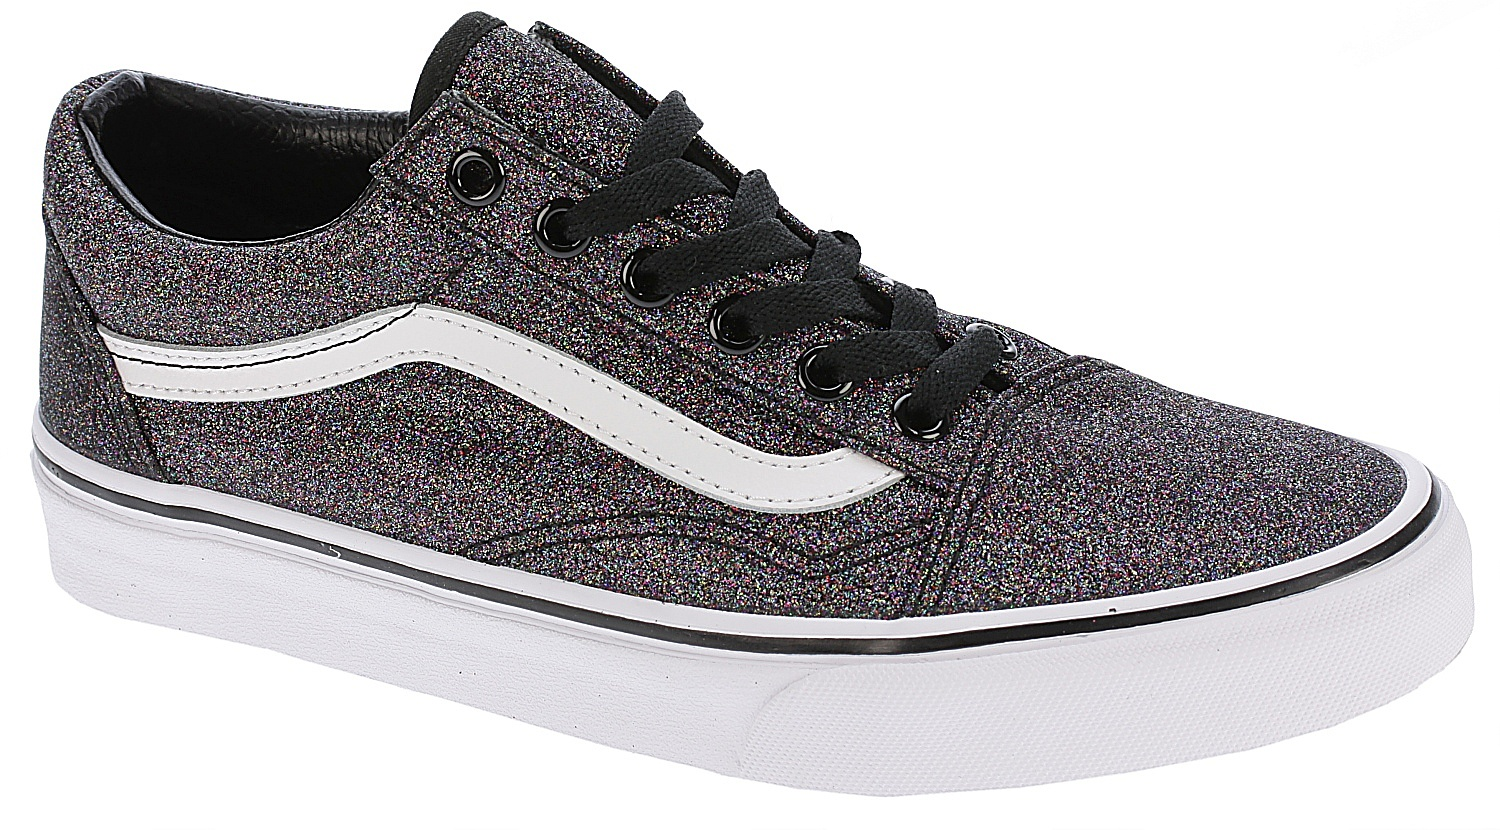 359a447d34fad1 shoes Vans Old Skool - Glitter Rainbow Black - Snowboard shop ...